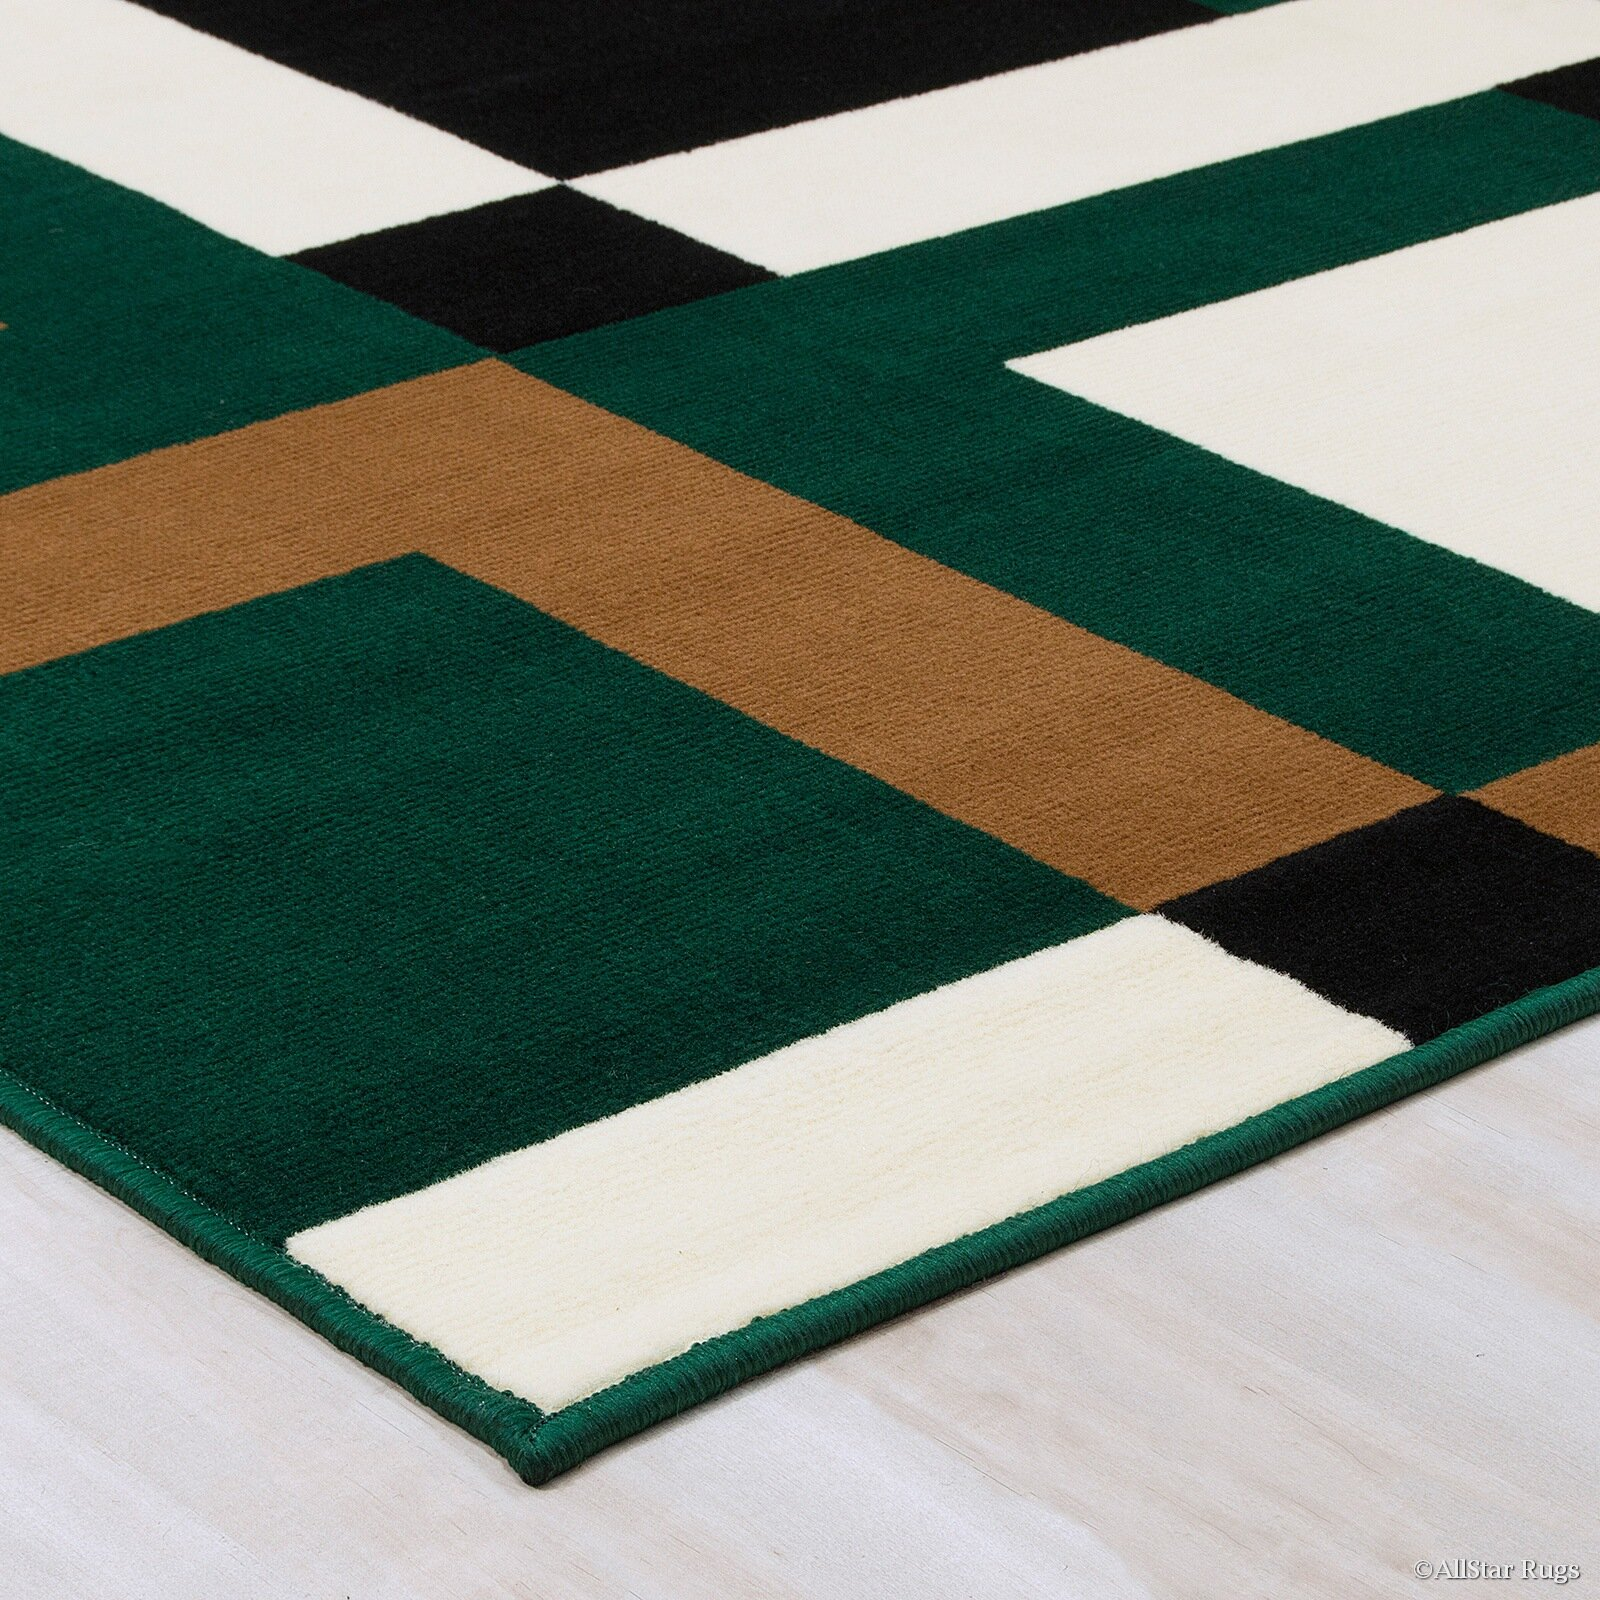 AllStar Rugs Hand-Woven Green/Brown Area Rug